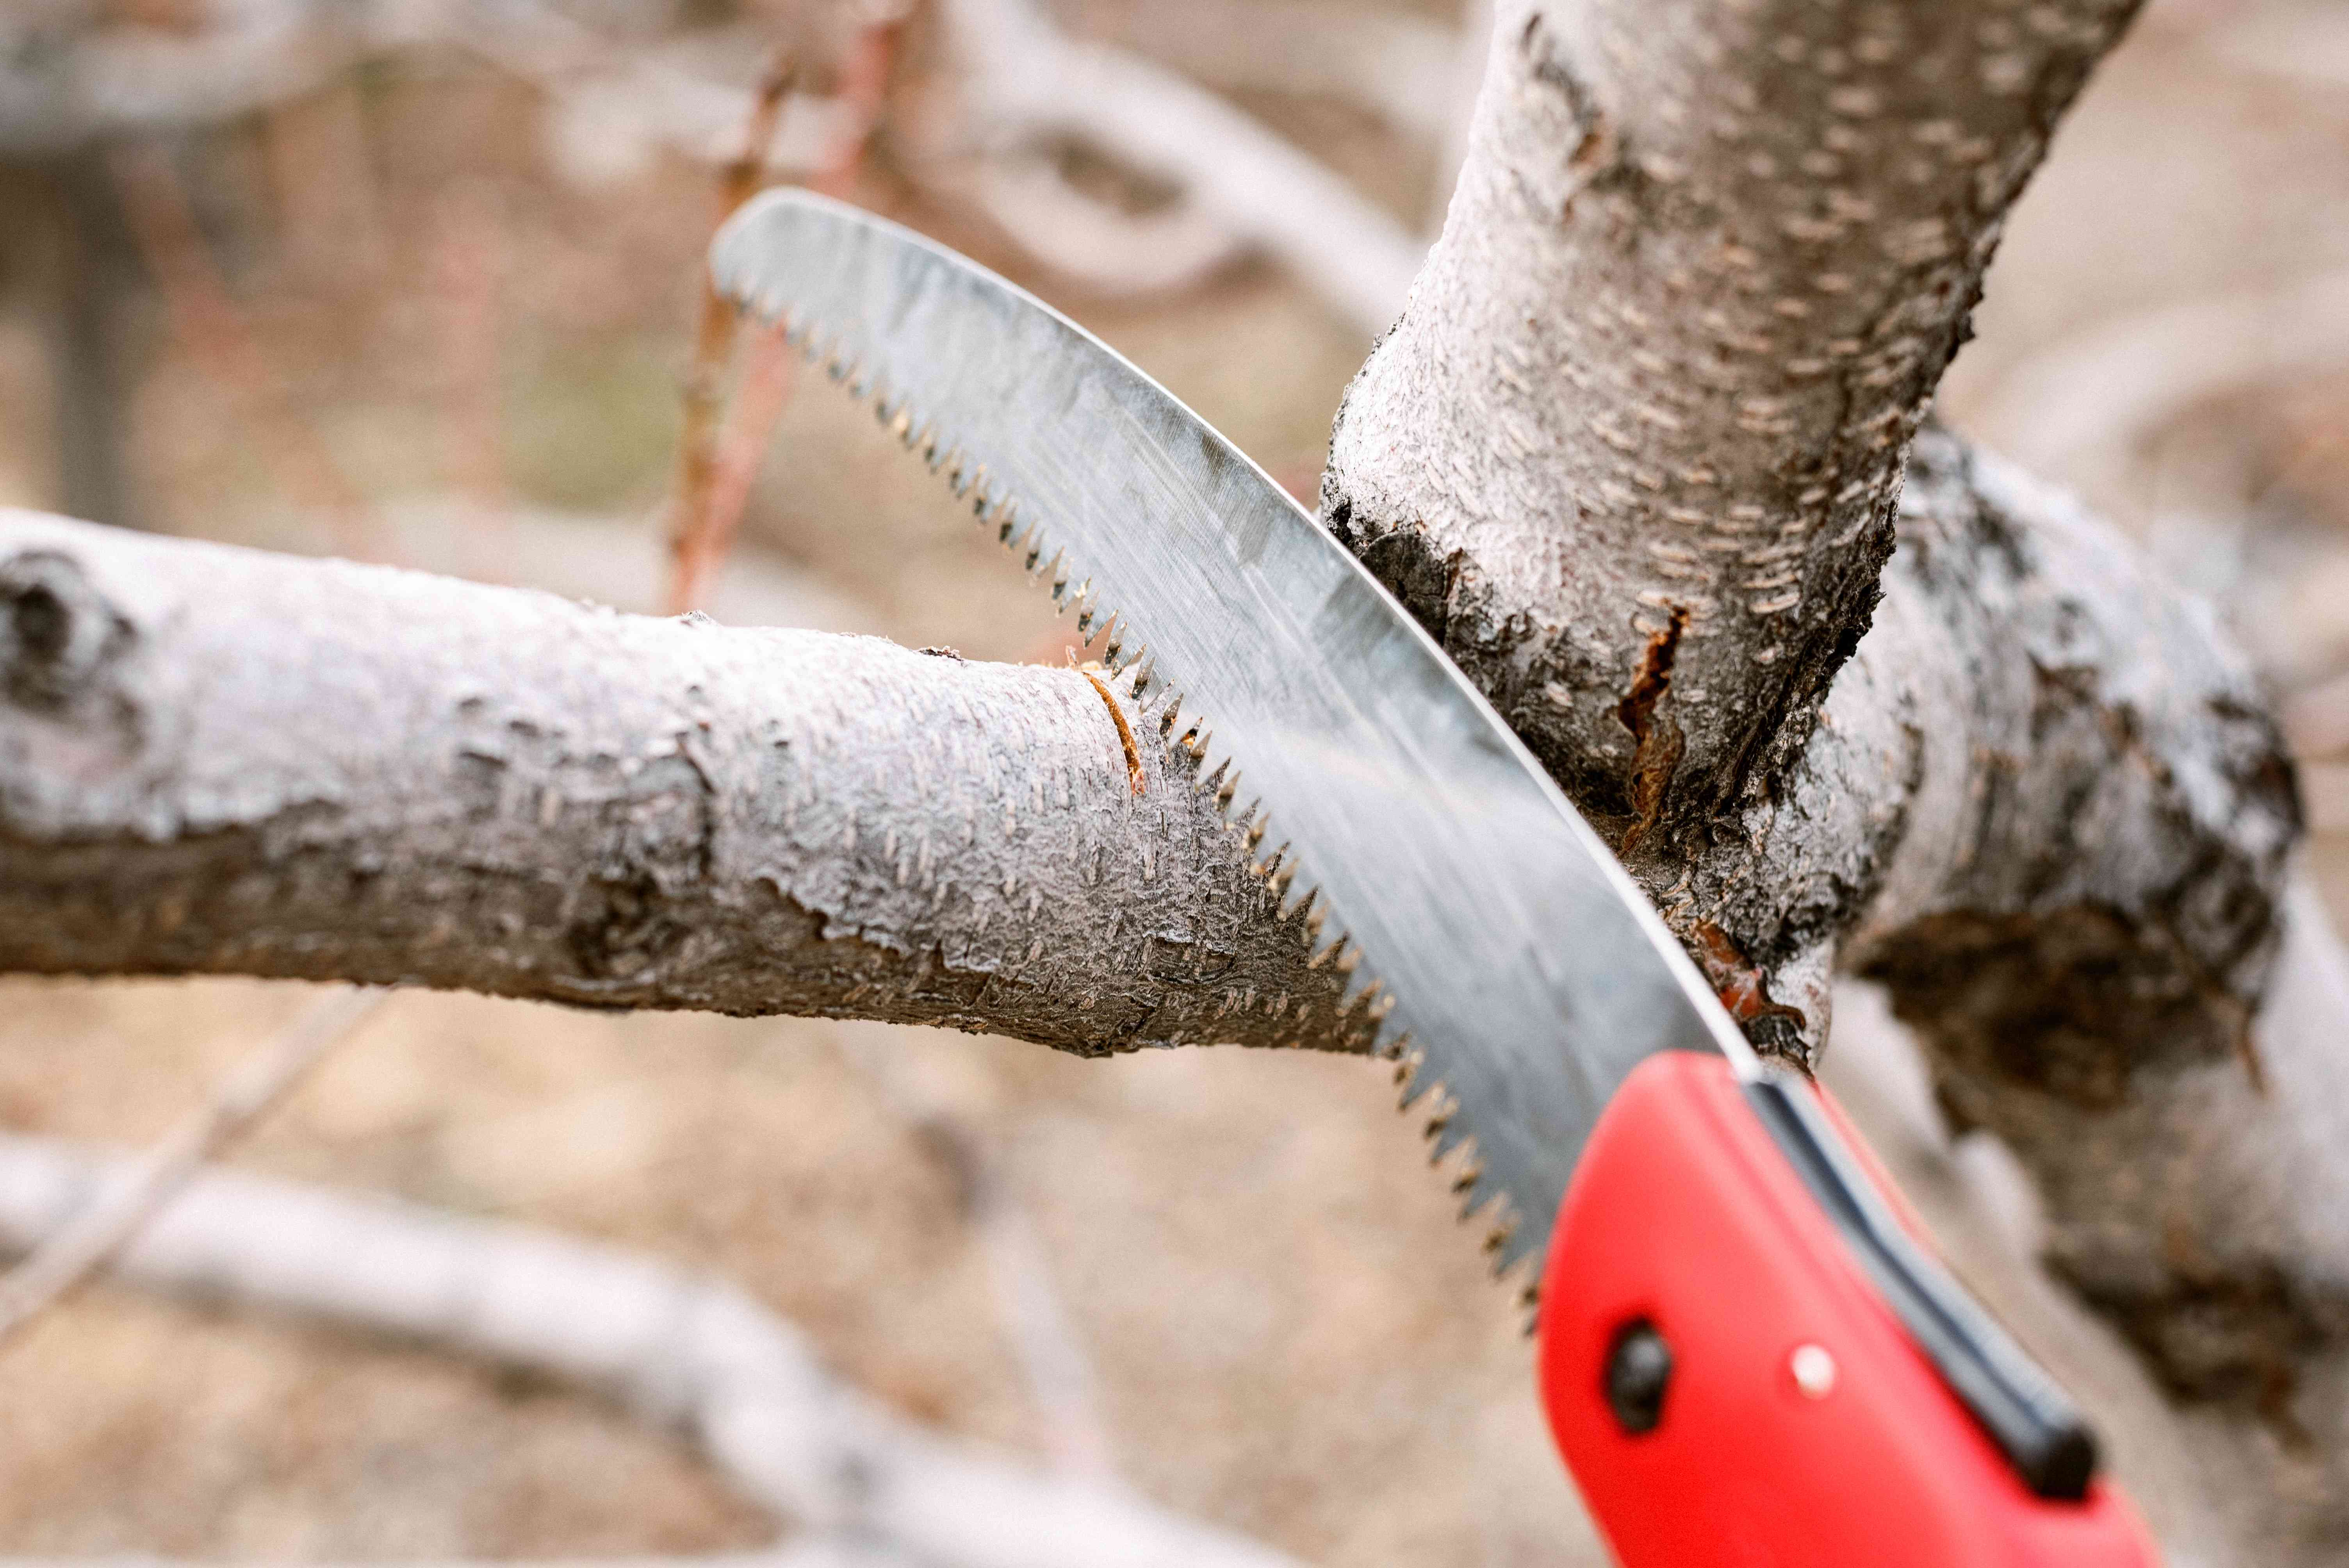 Pruning saw with red handle cutting downward on shrub branch